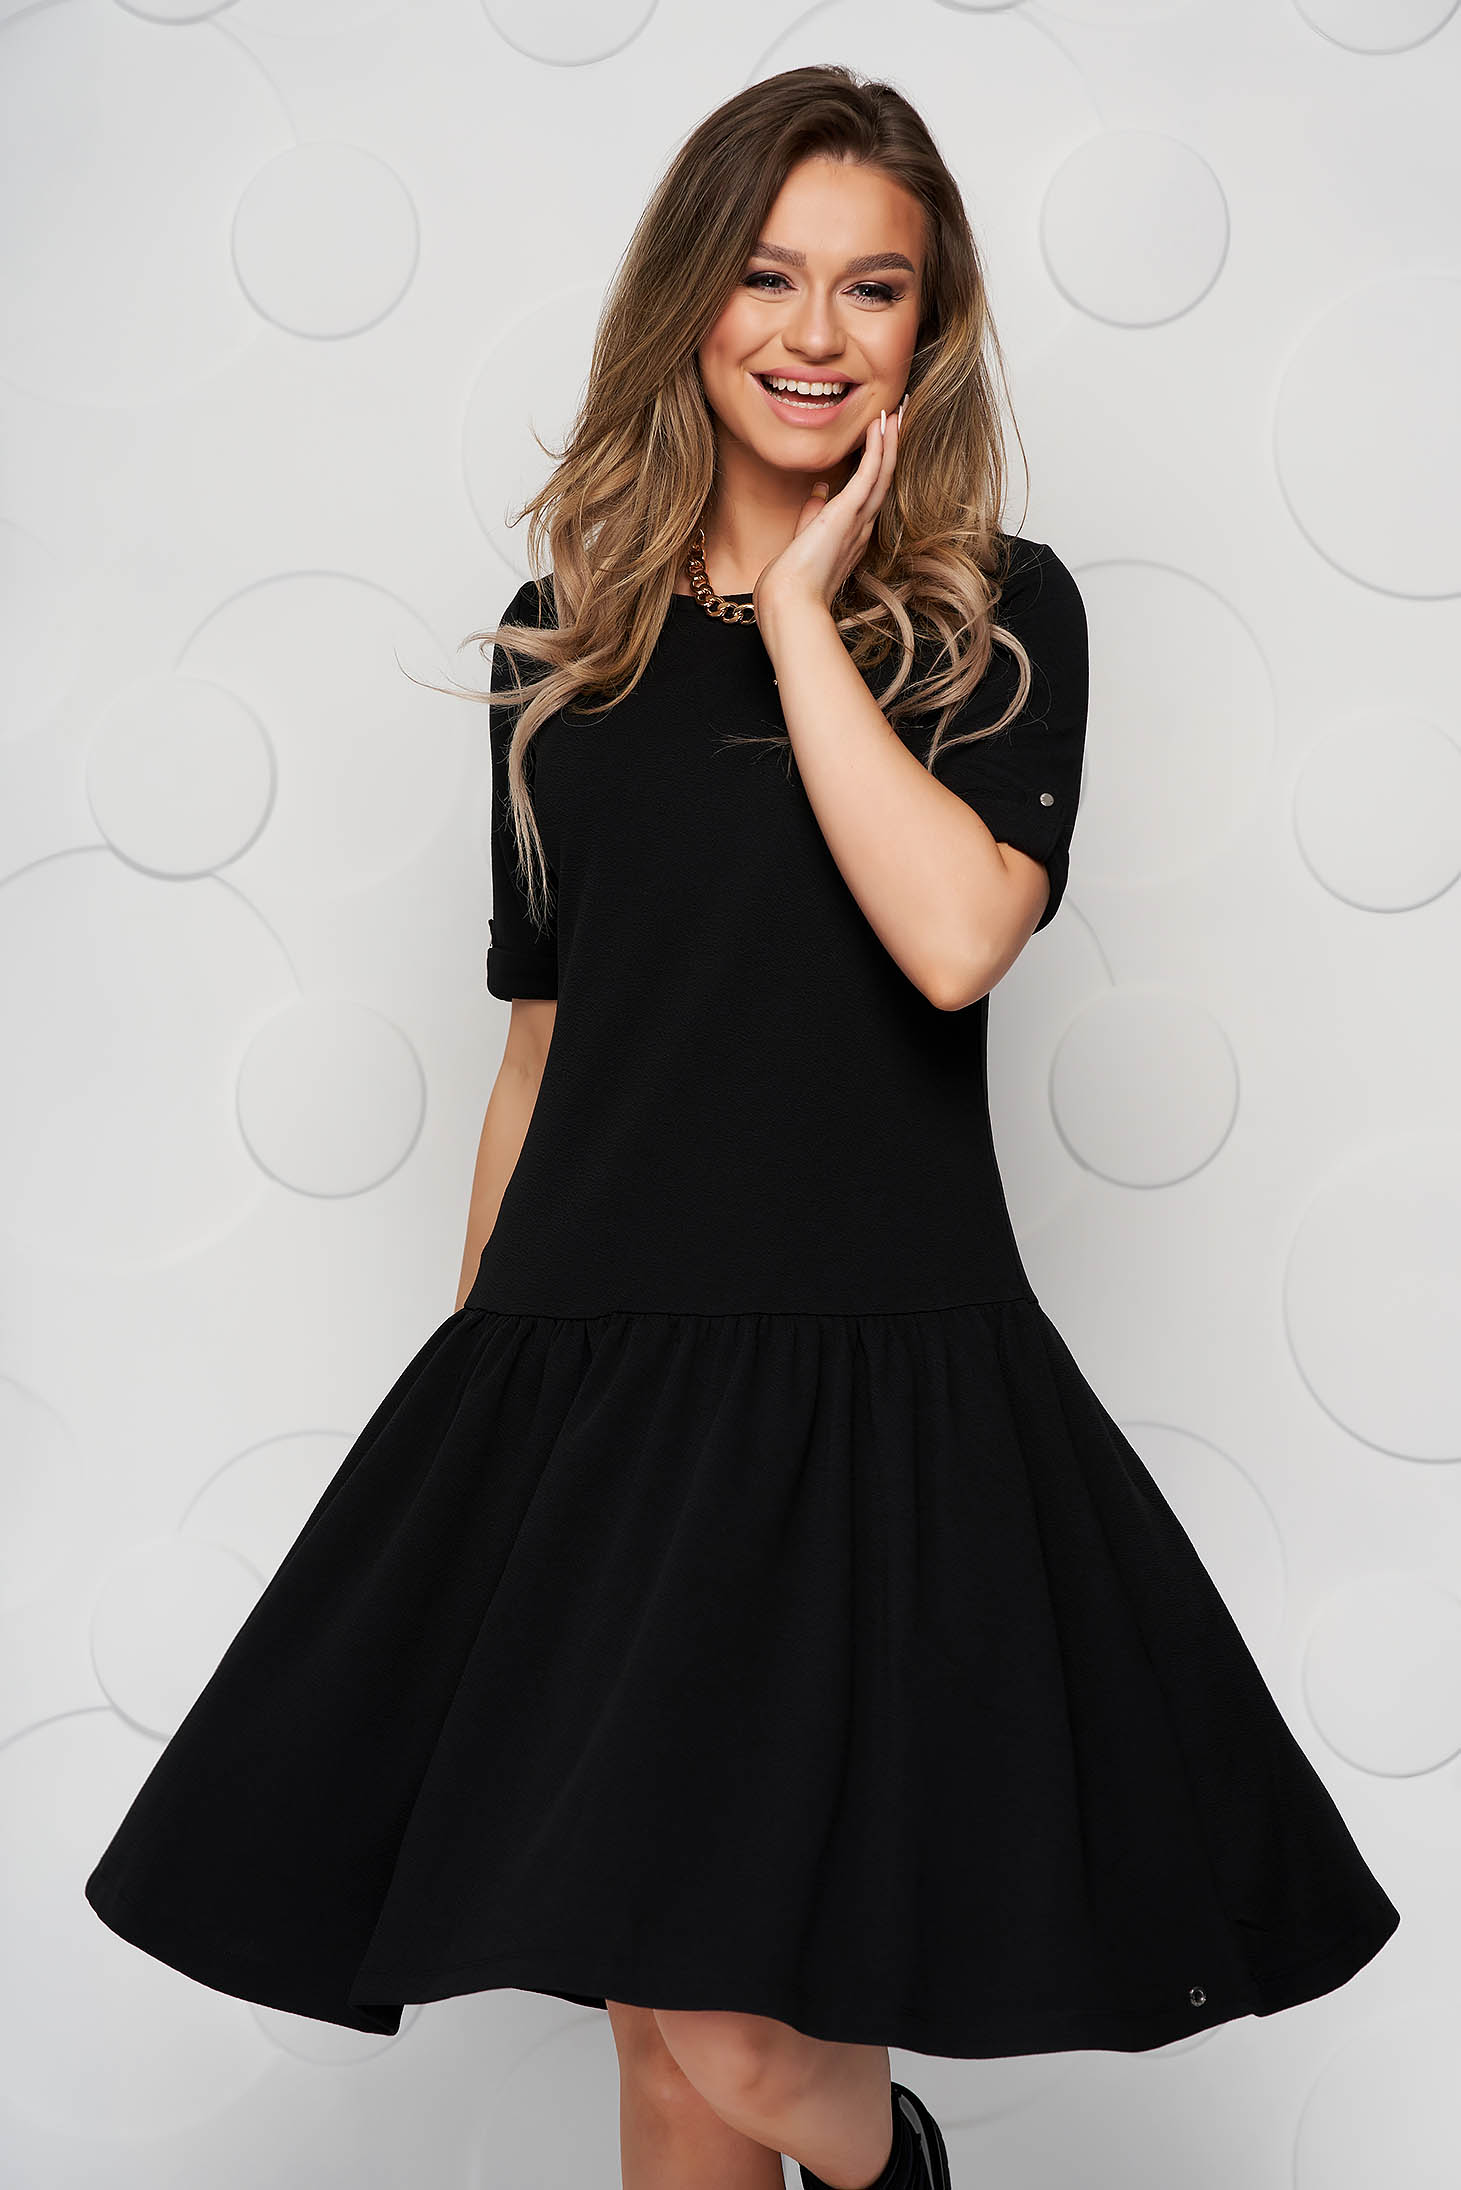 From elastic fabric loose fit with ruffle details black dress